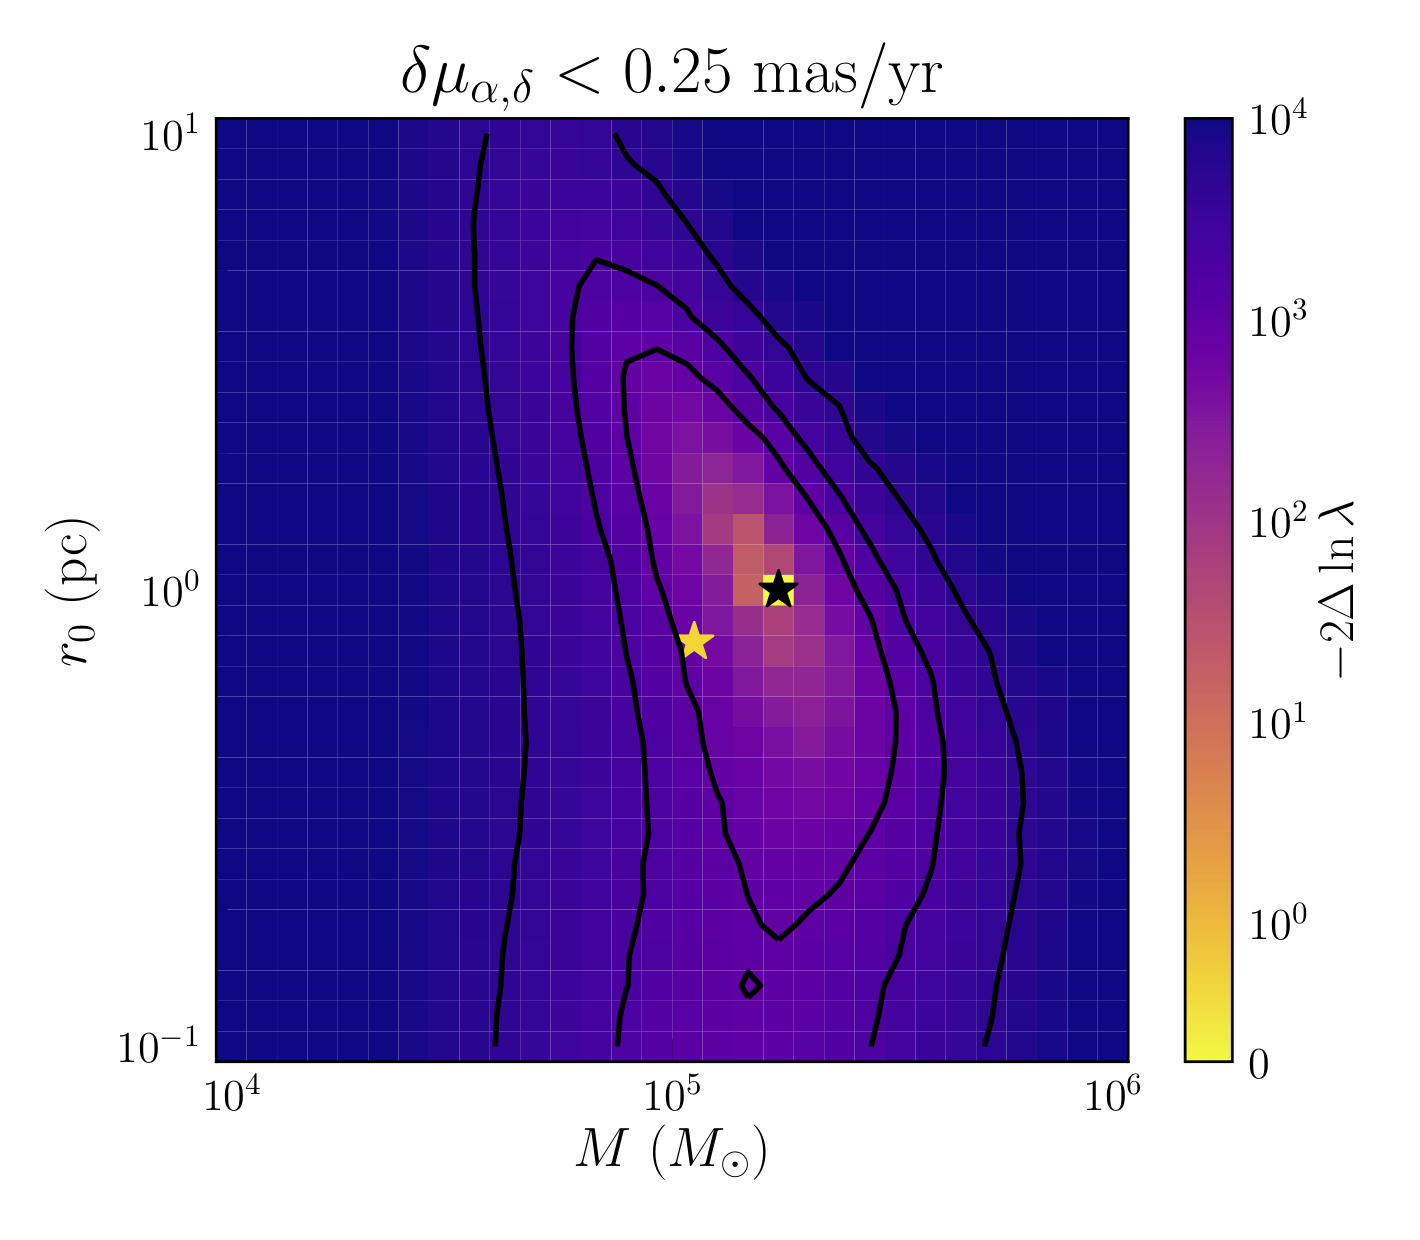 Best-fit mass and King profile radius for simulated M4 globular cluster, after cutting stars with large velocity errors. Correct answer is shown with the gold star, best-fit is the black star.